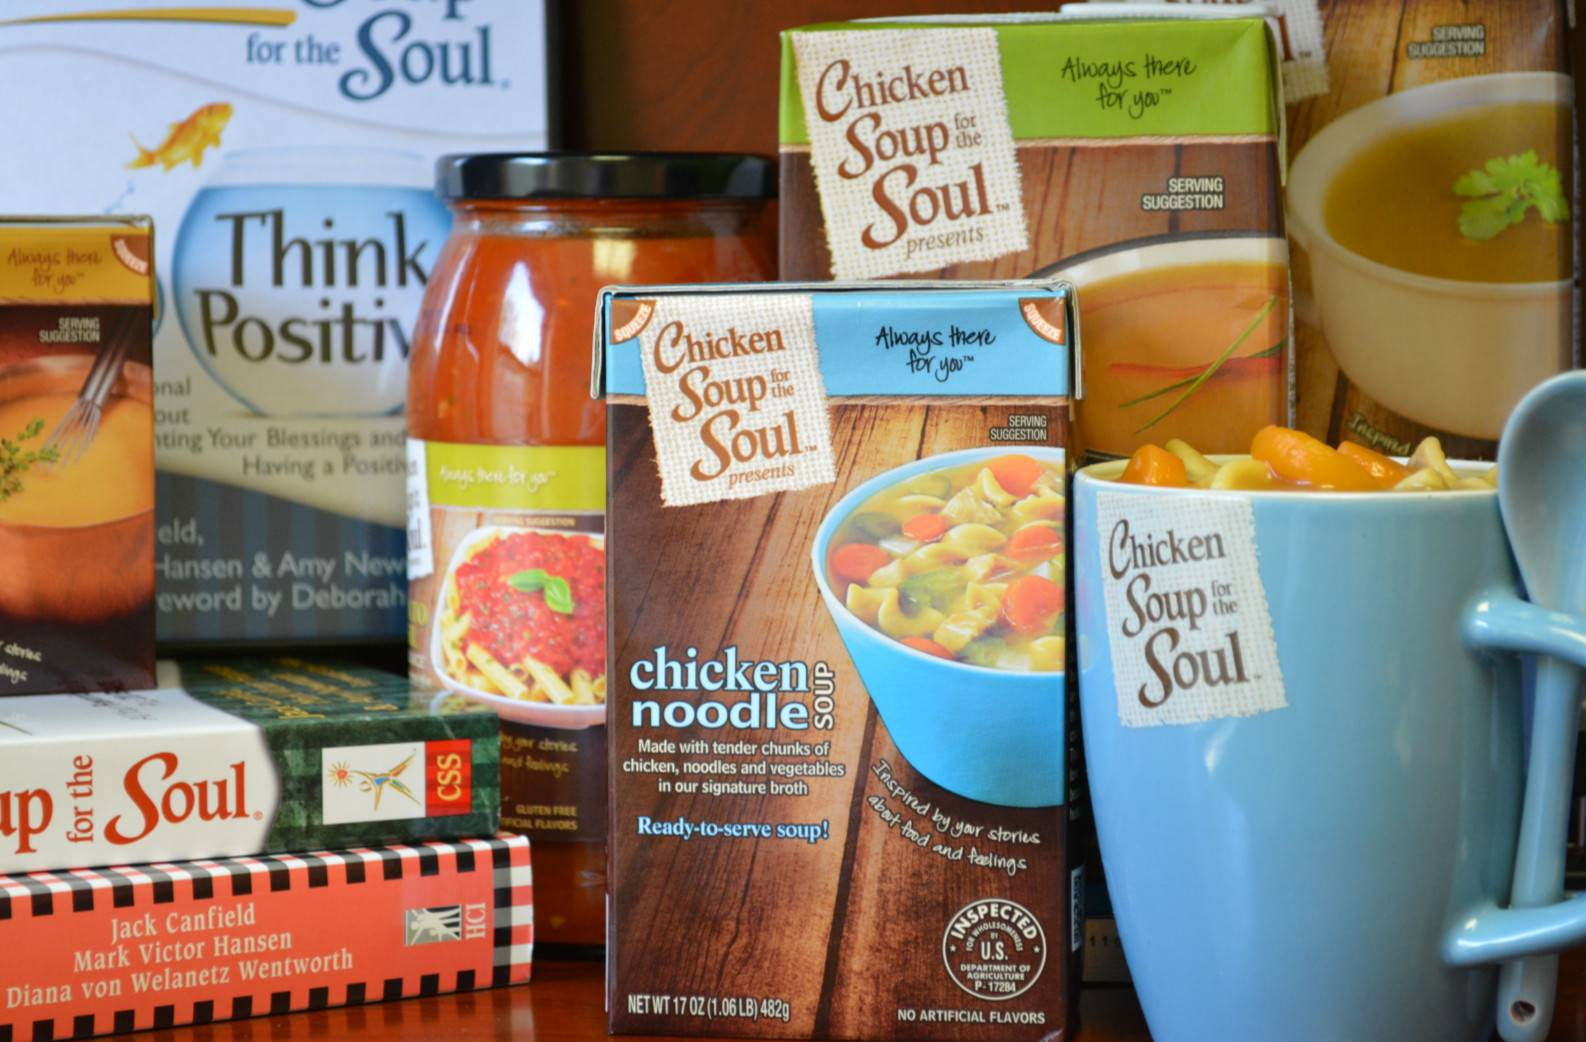 chicken-soup-for-the-soul-living-social-deal_meitu_1